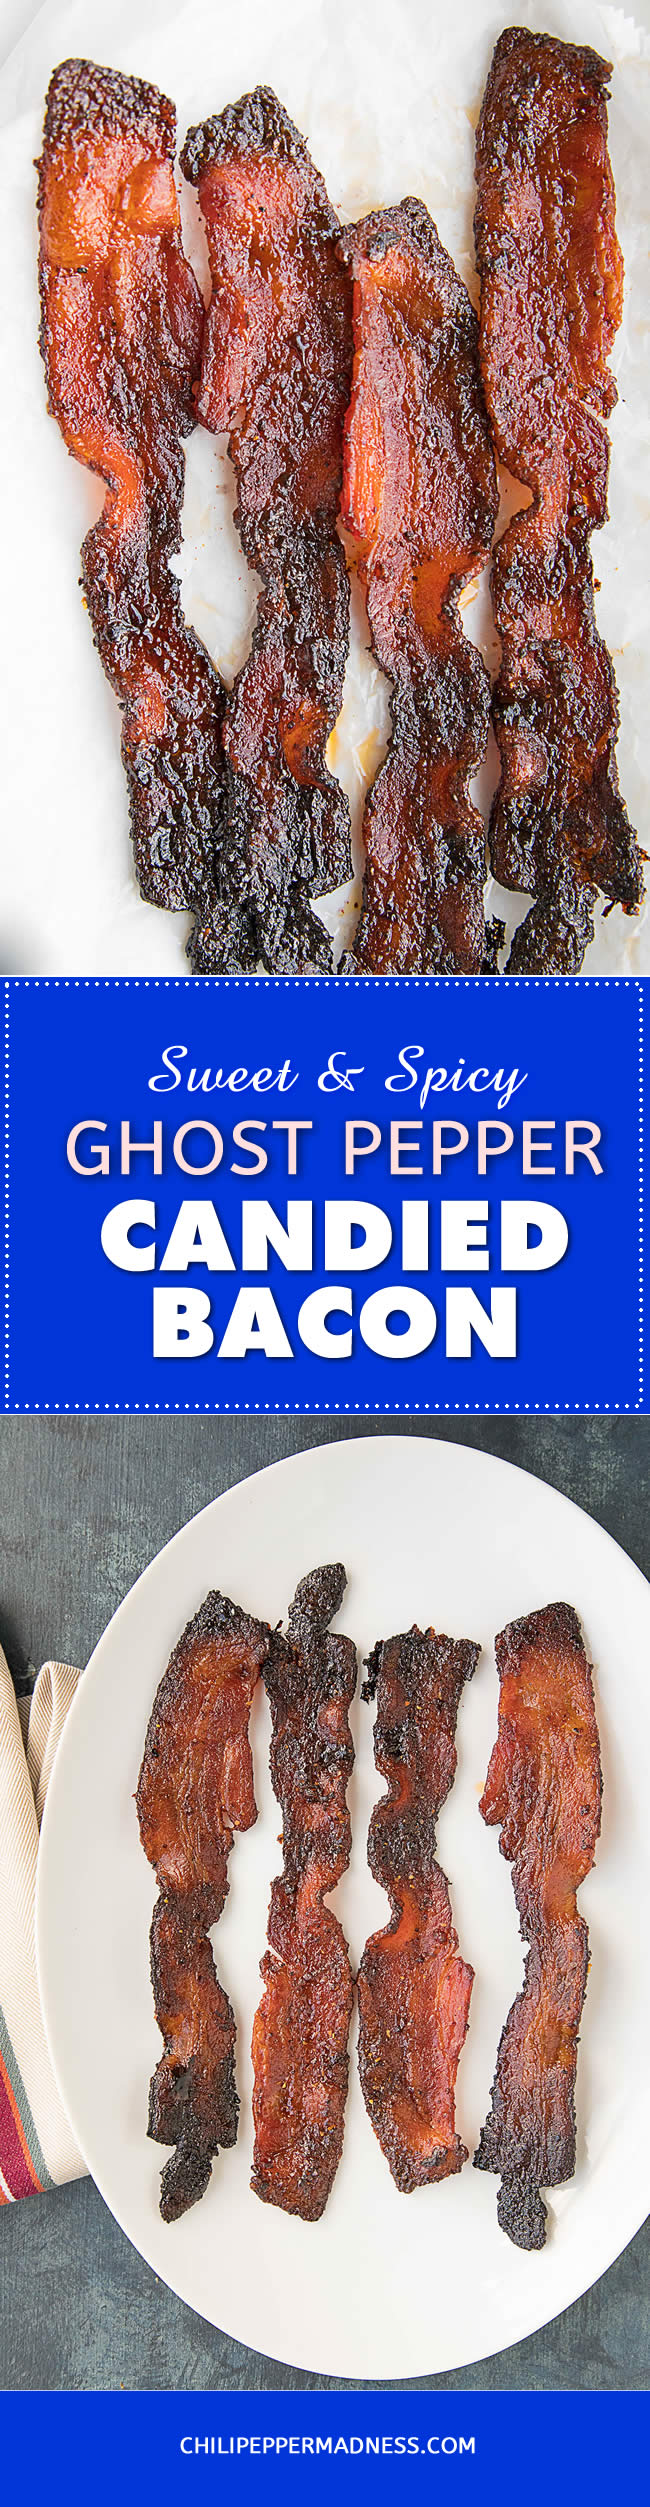 Sweet and Spicy Ghost Pepper Candied Bacon - Recipe